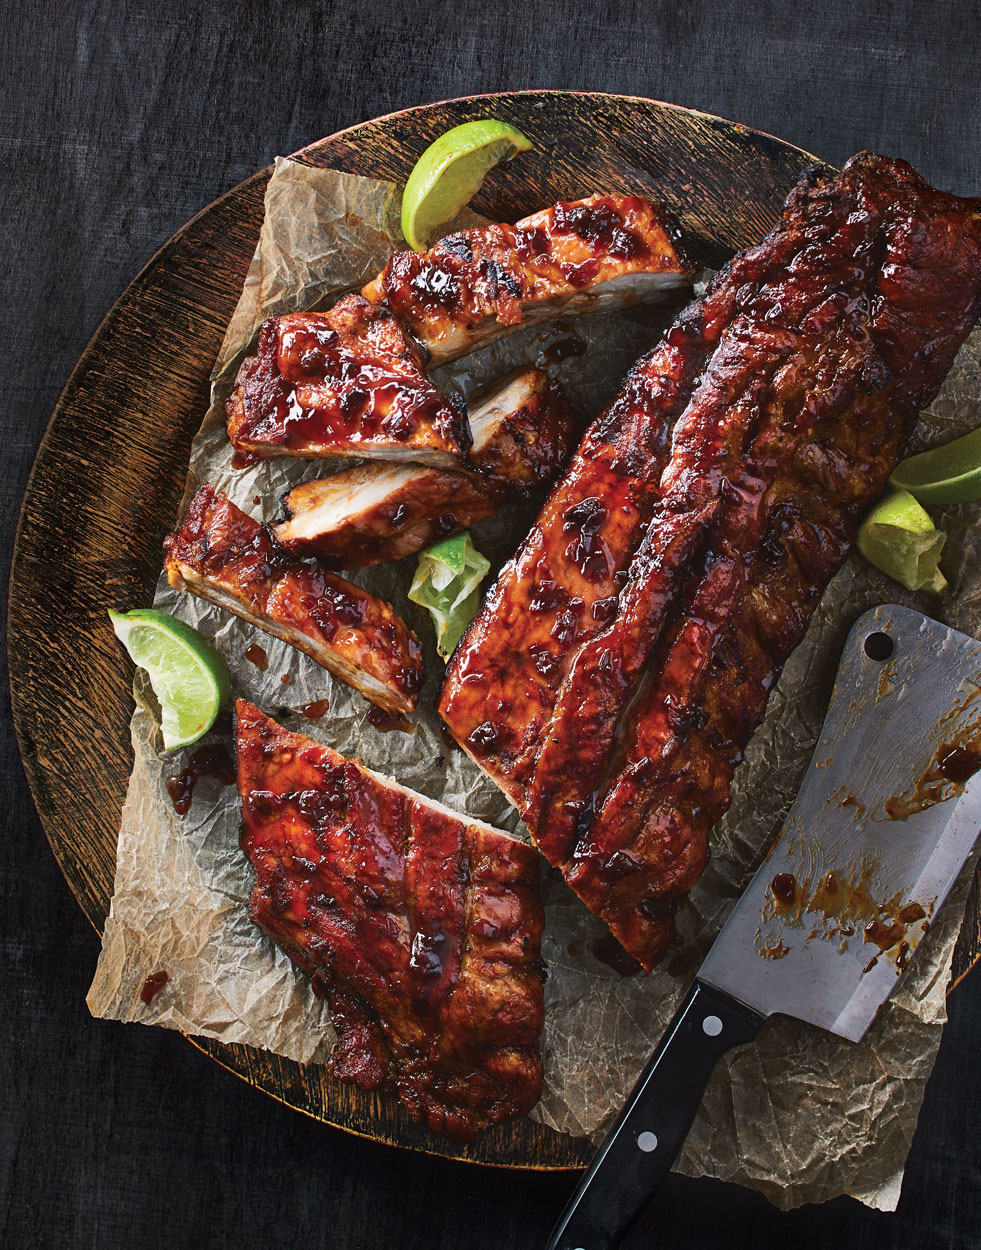 Mezcal Ribs with Margarita Glaze